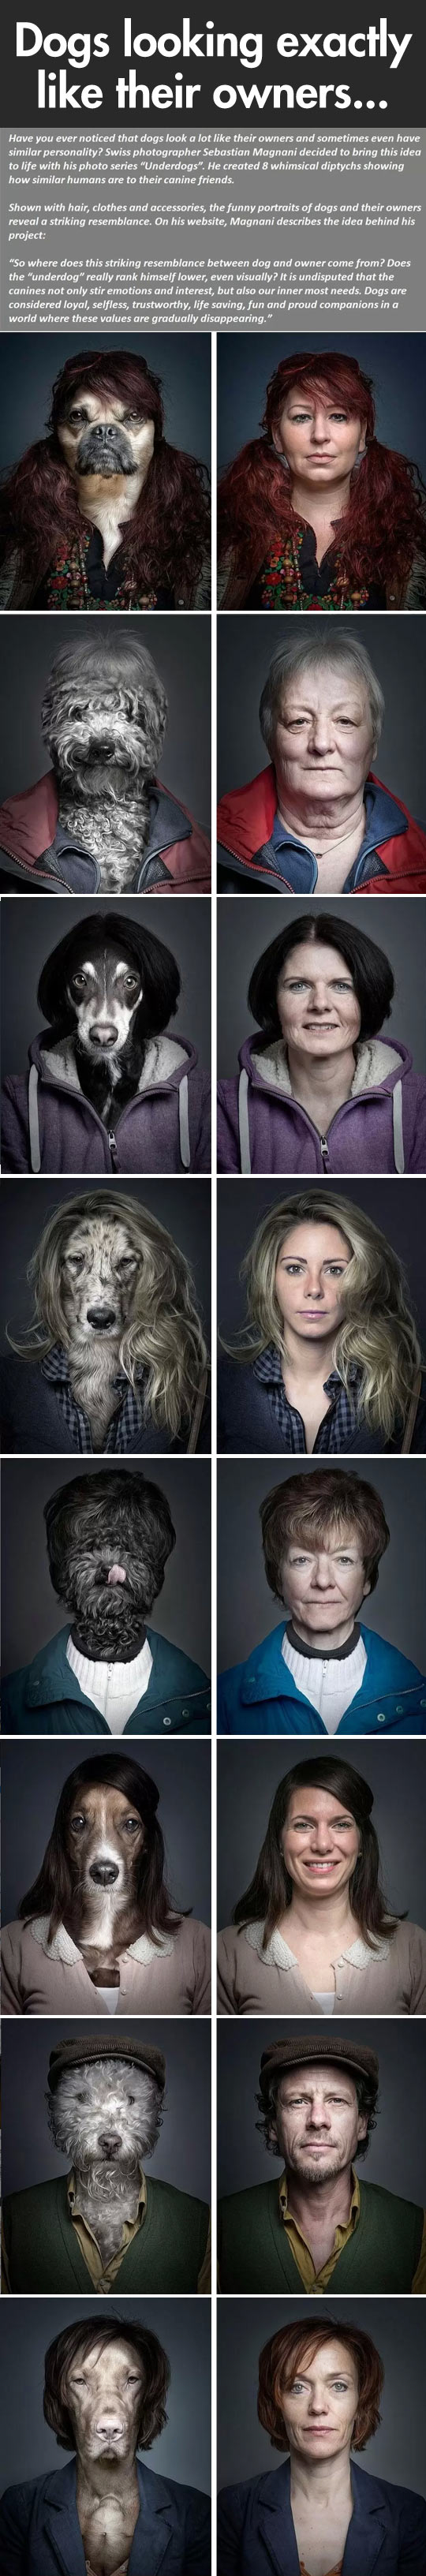 Dogs looking like their owners…